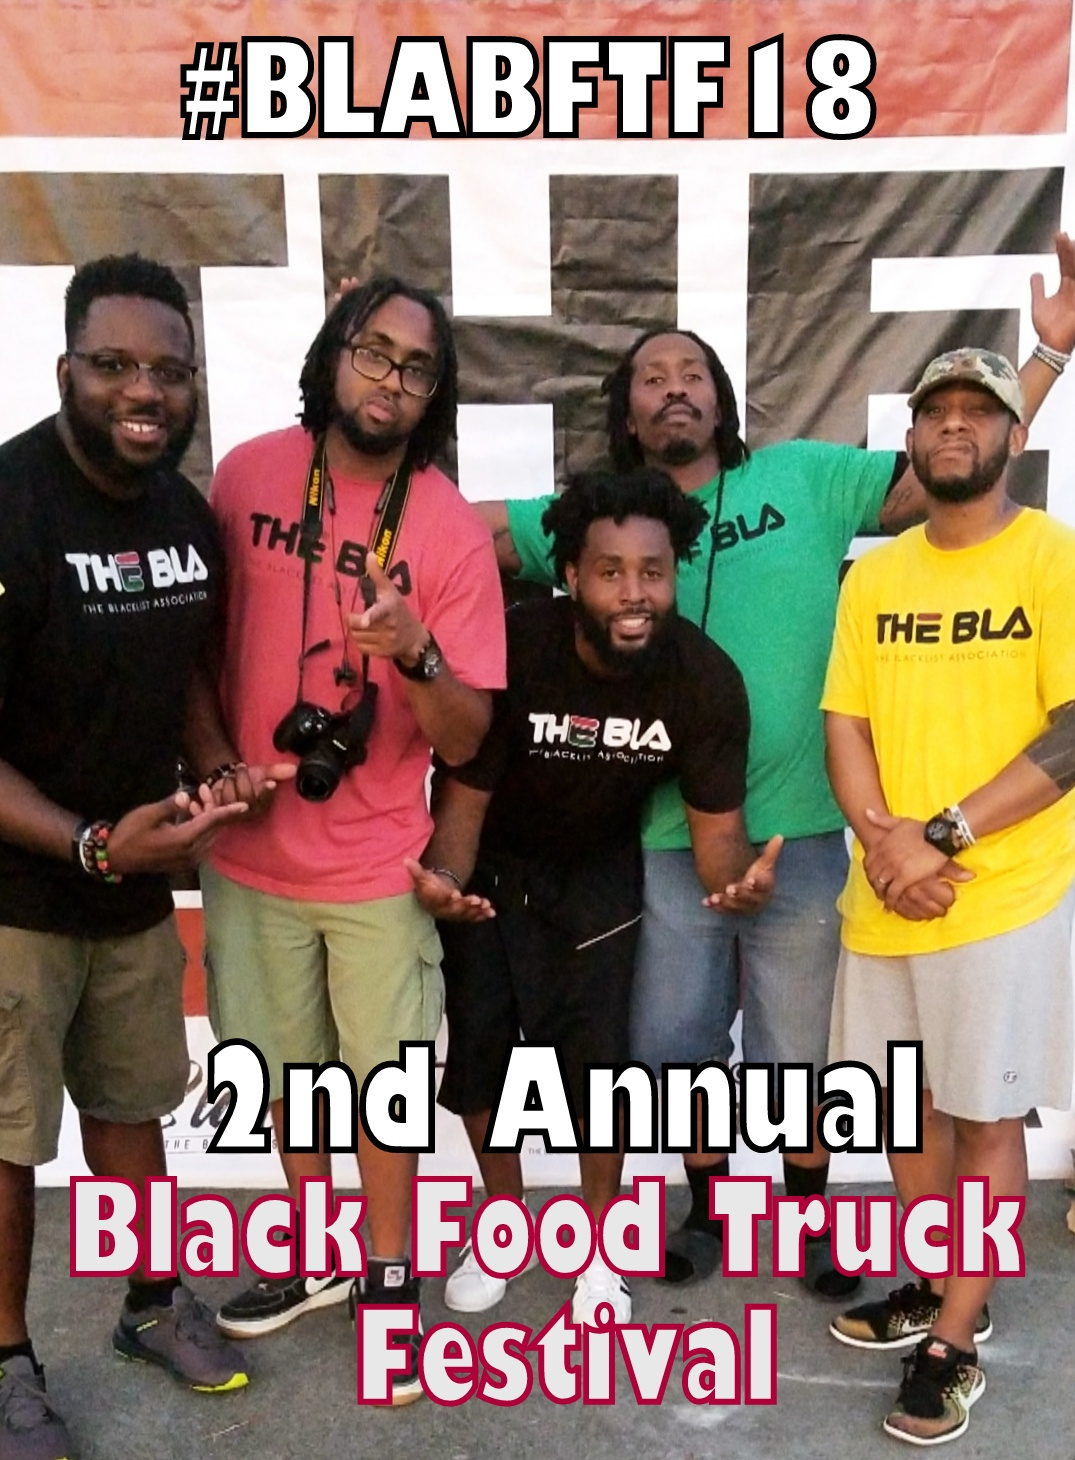 2nd Annual Black Food Truck Festival Highlights Houston's Black Owned Food Trucks & Businesses